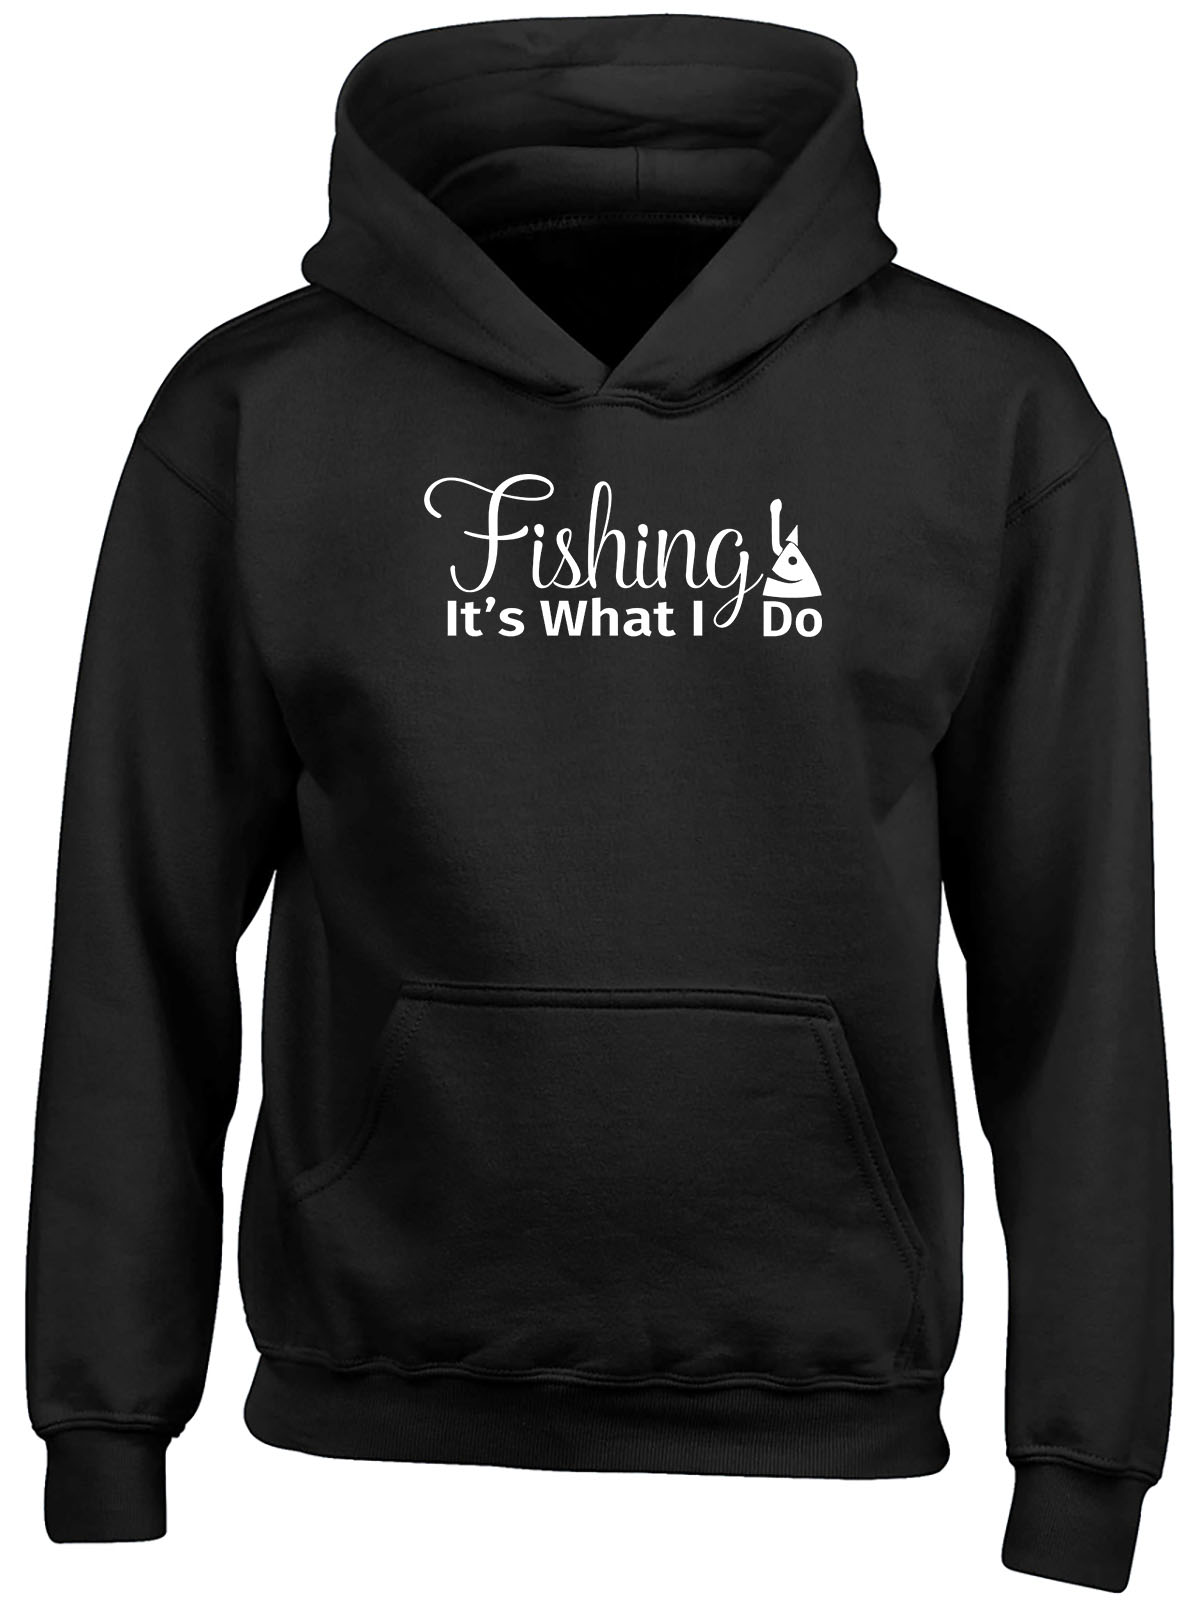 Fishing It's What I Do Childrens Kids Hooded Top Hoodie Boys Girls